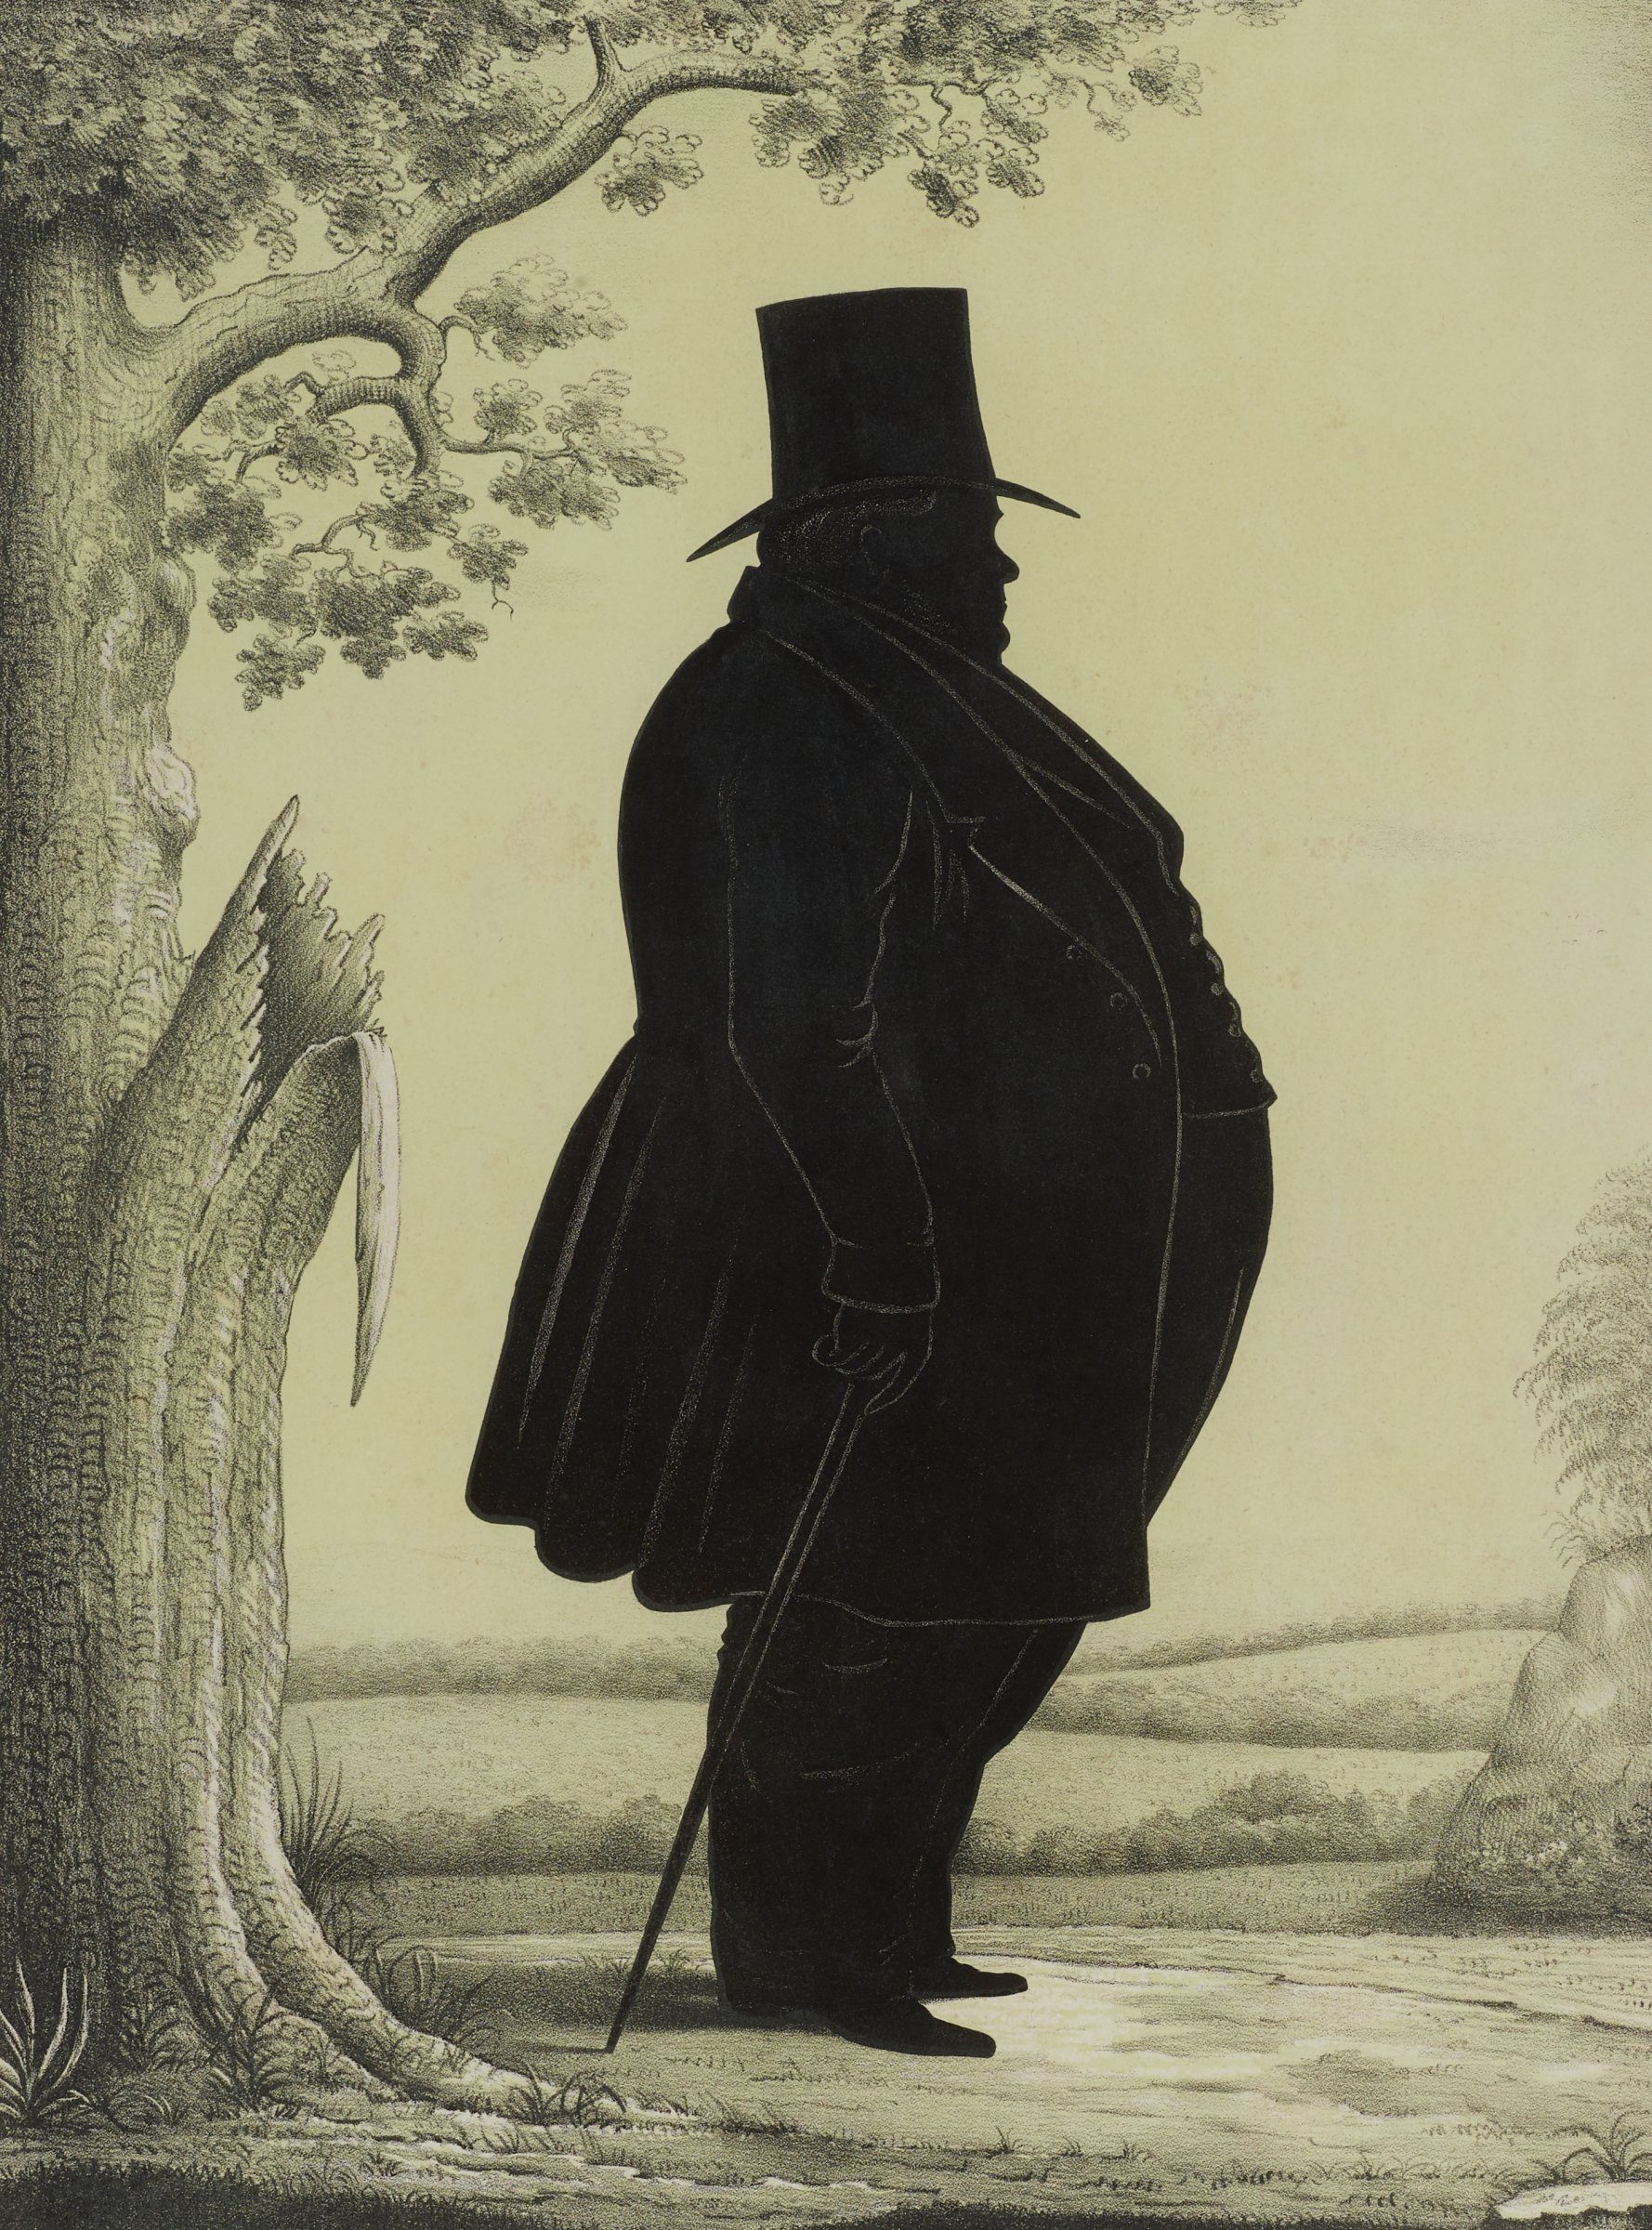 Dixon Hall Lewis, After an original silhouette by William Brown, Lithographer, Edmund Burke Kellogg, Lithographer, Elijah Chapman Kellogg, Published by E. B. and F. C. Kellogg, two-stone lithograph